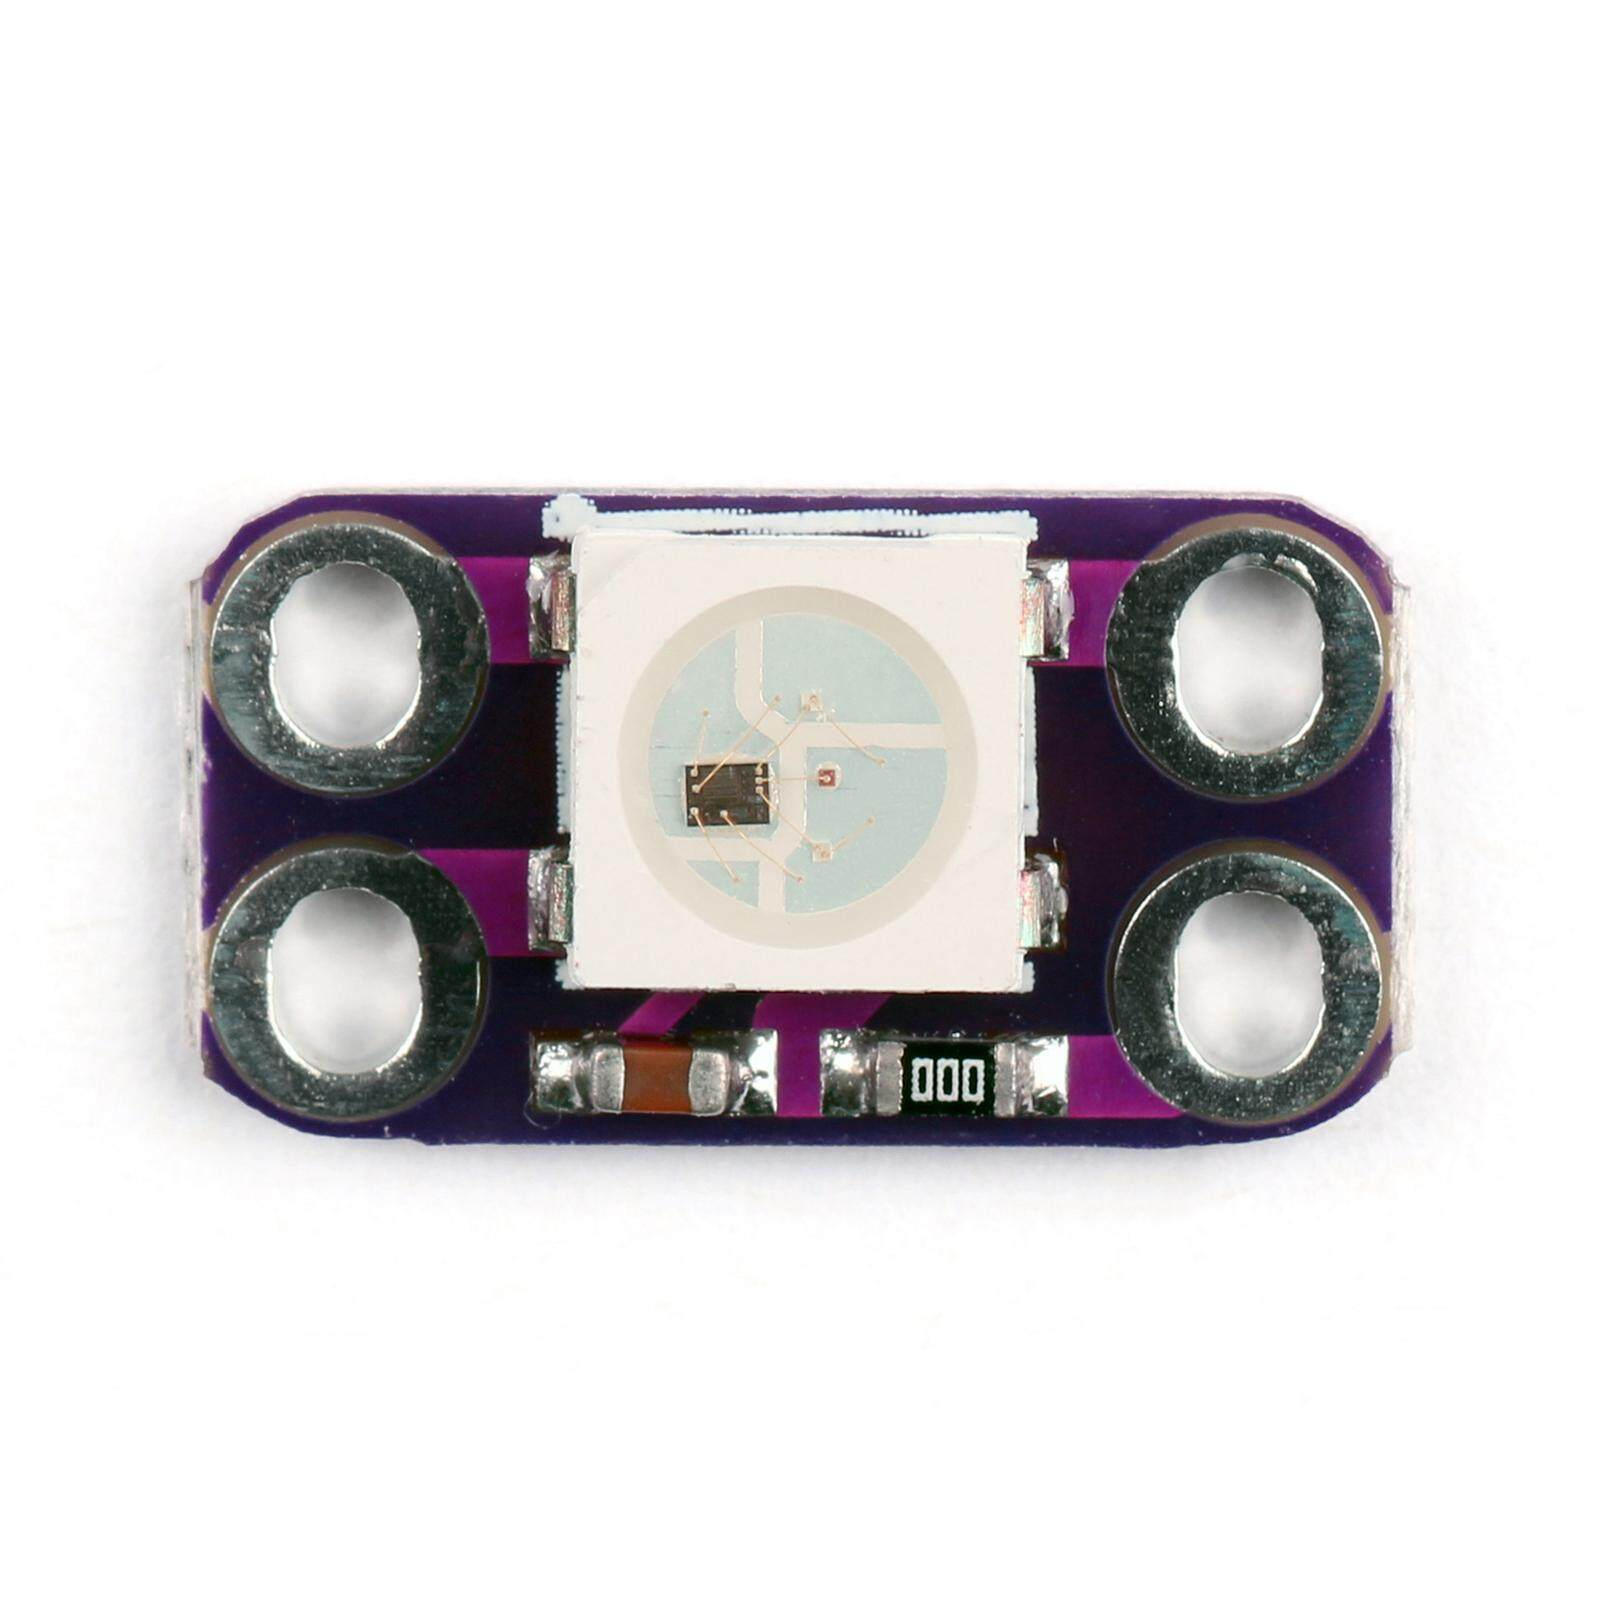 Sell Areyourshop 1pcs 4 Cheapest Best Quality My Store Avaya 4620 5620 Circuit Board Myr 13